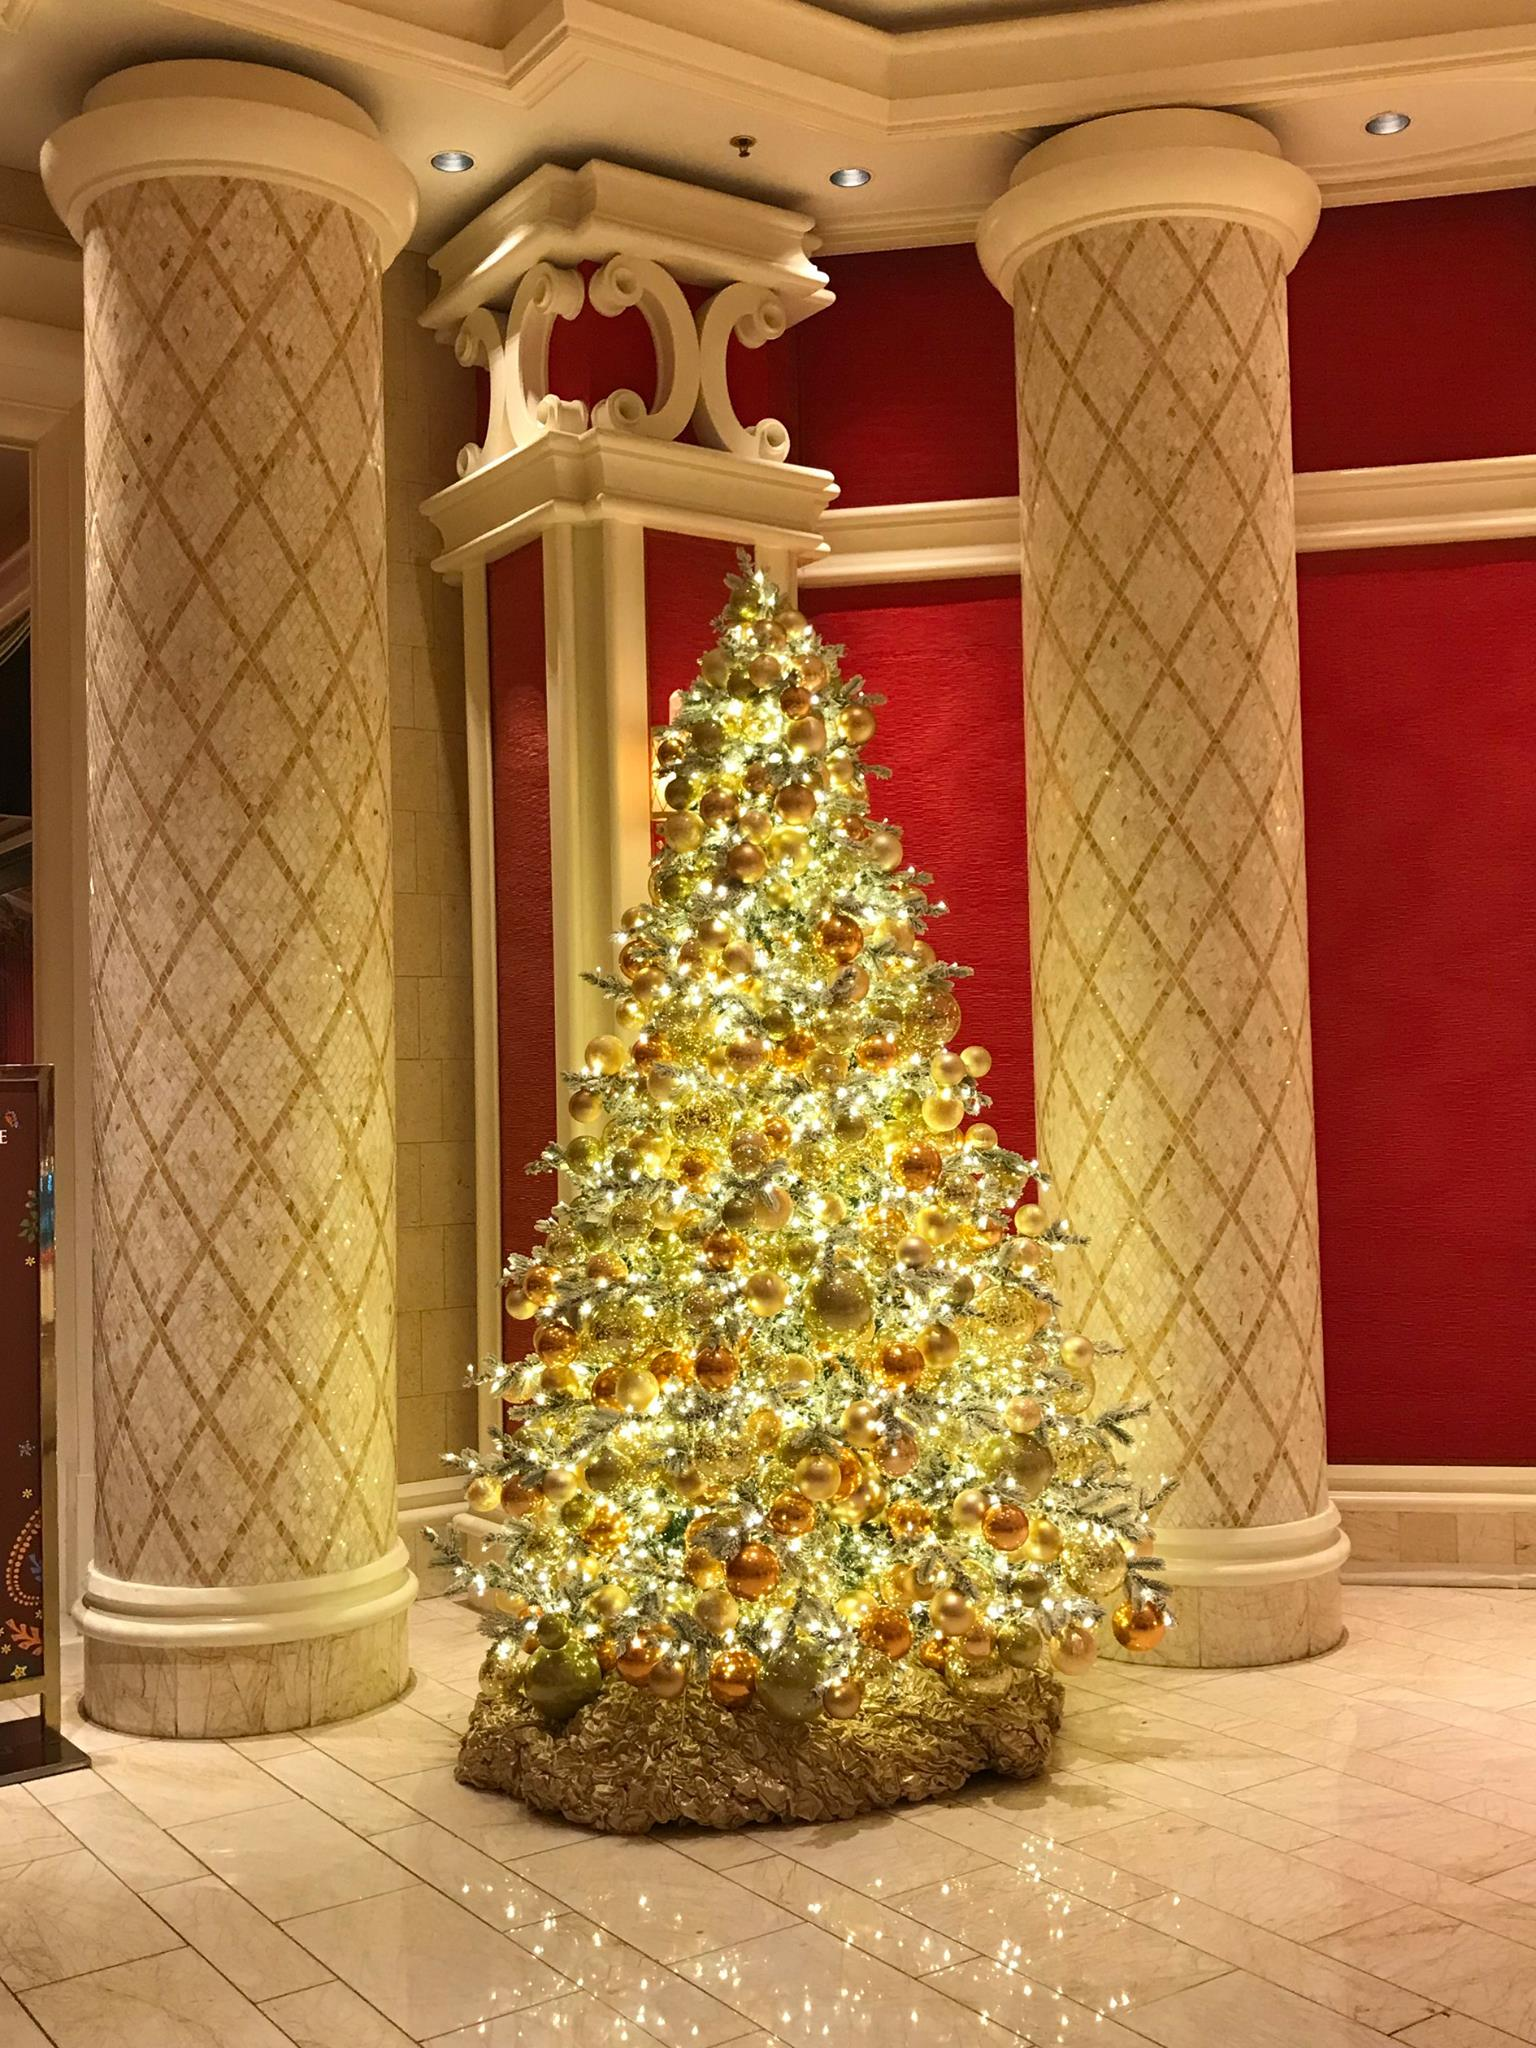 Picture of Christmas tree at Wynn